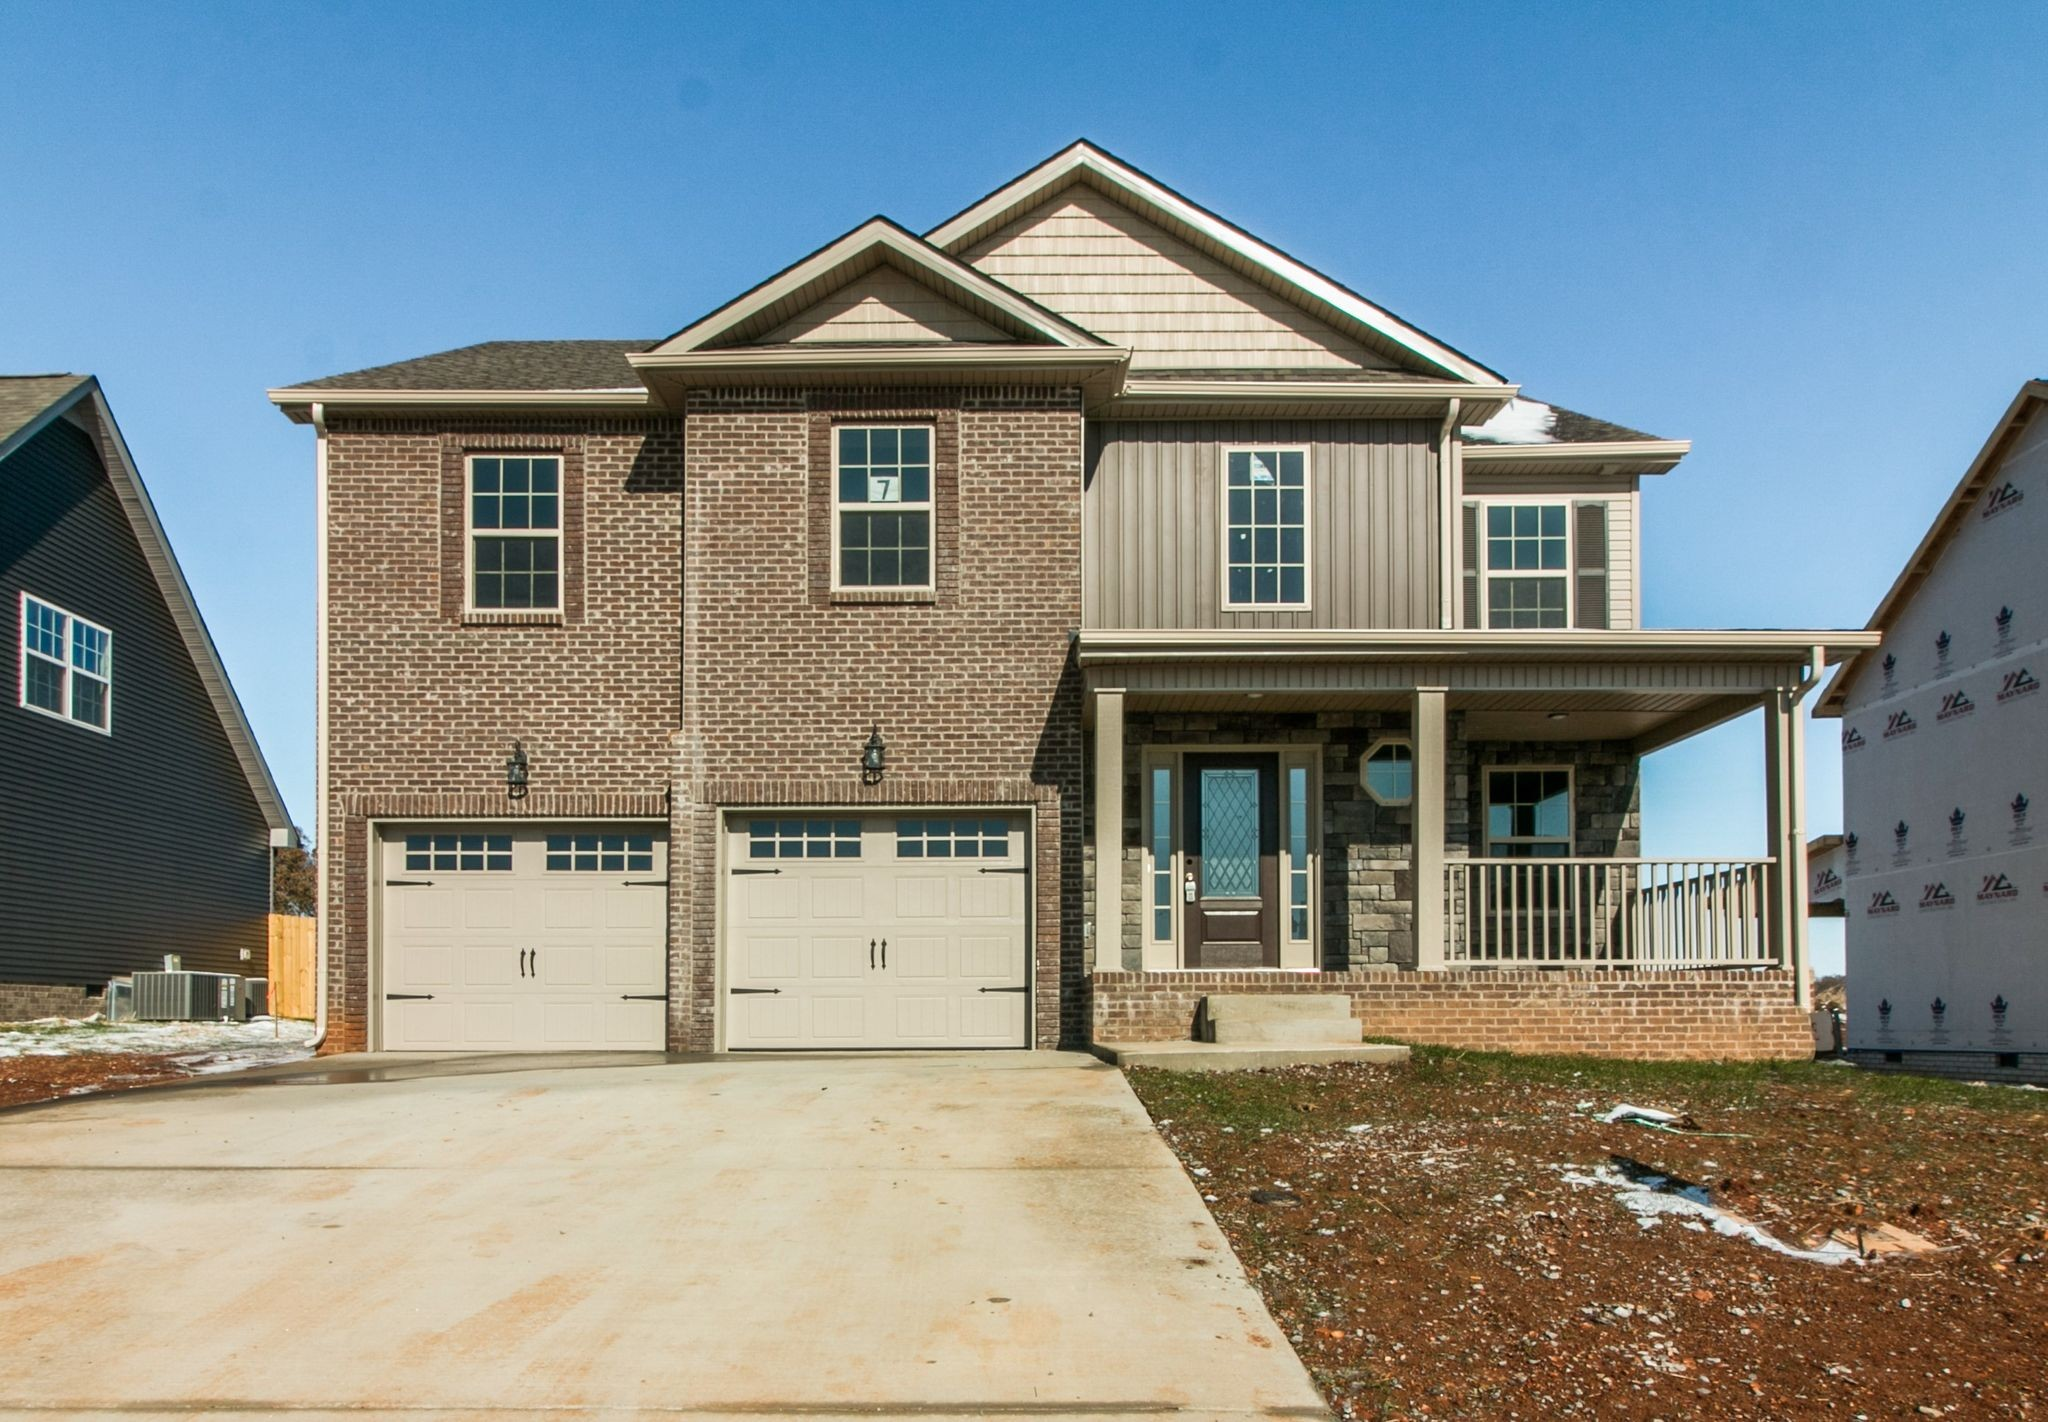 1425 Wild Fern Ln (Lot 7), Clarksville, TN 37042 - Clarksville, TN real estate listing